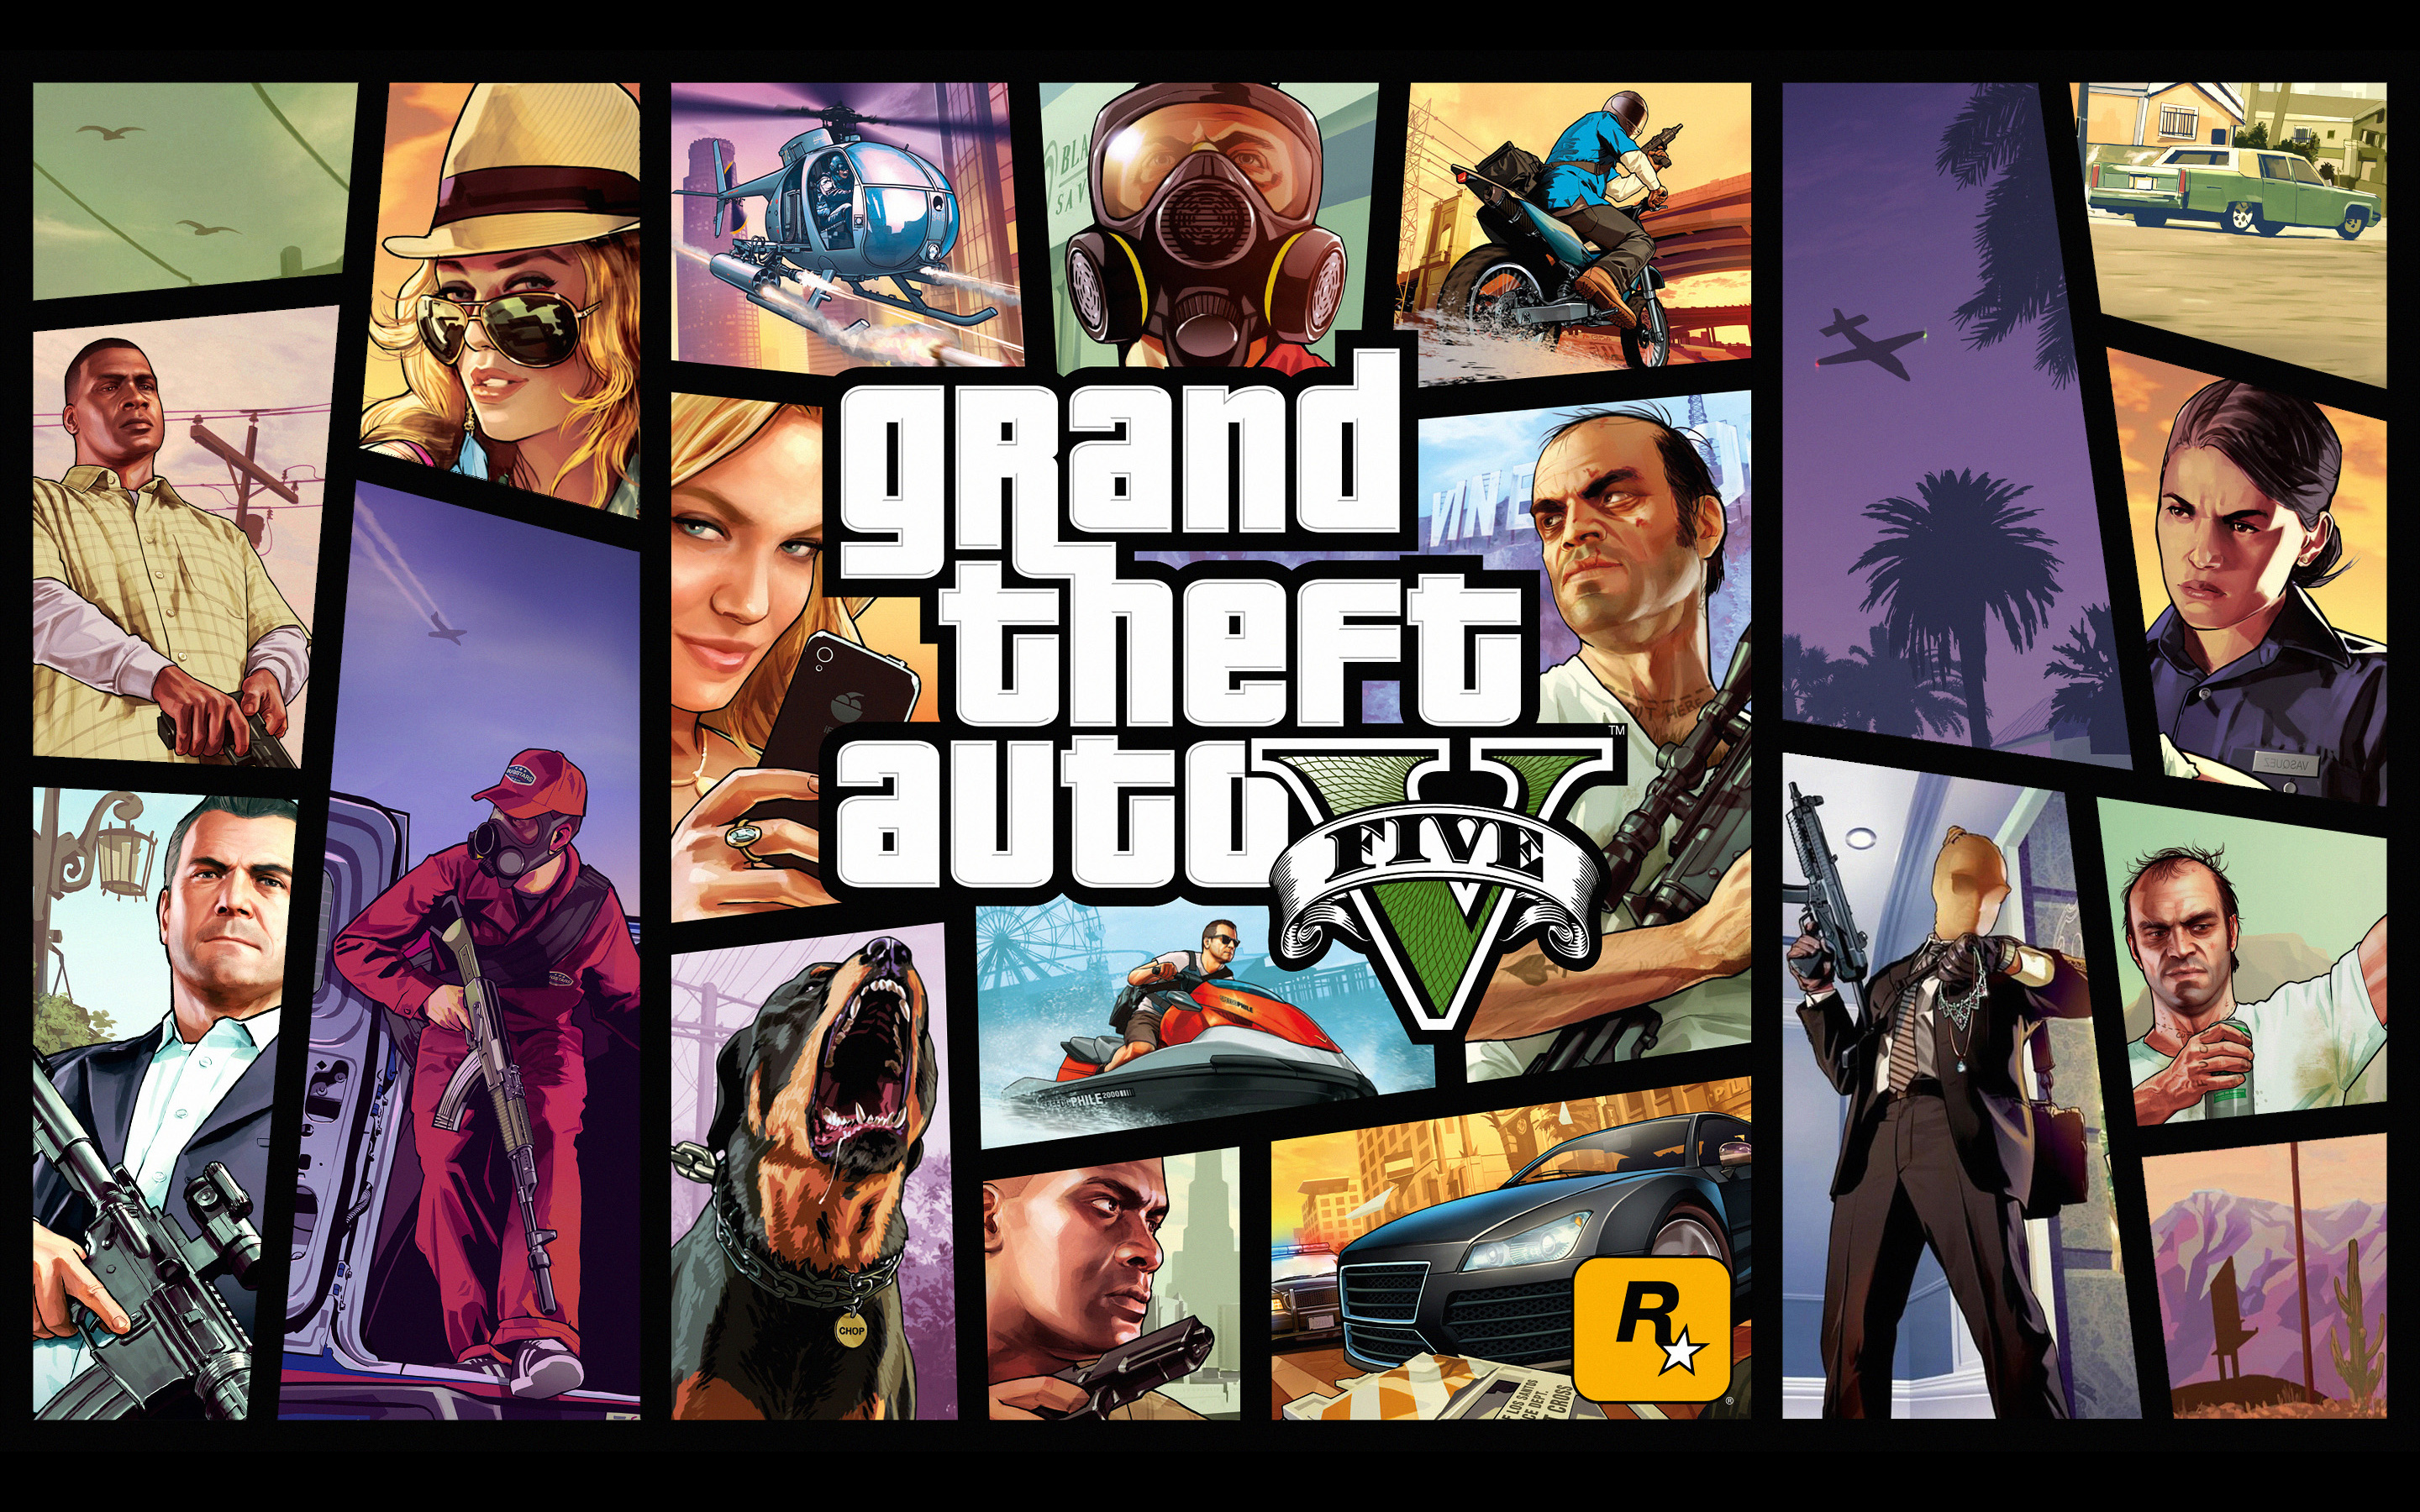 game wallpapers gta 5 ps3 wallpaper 31897jpg 2880x1800